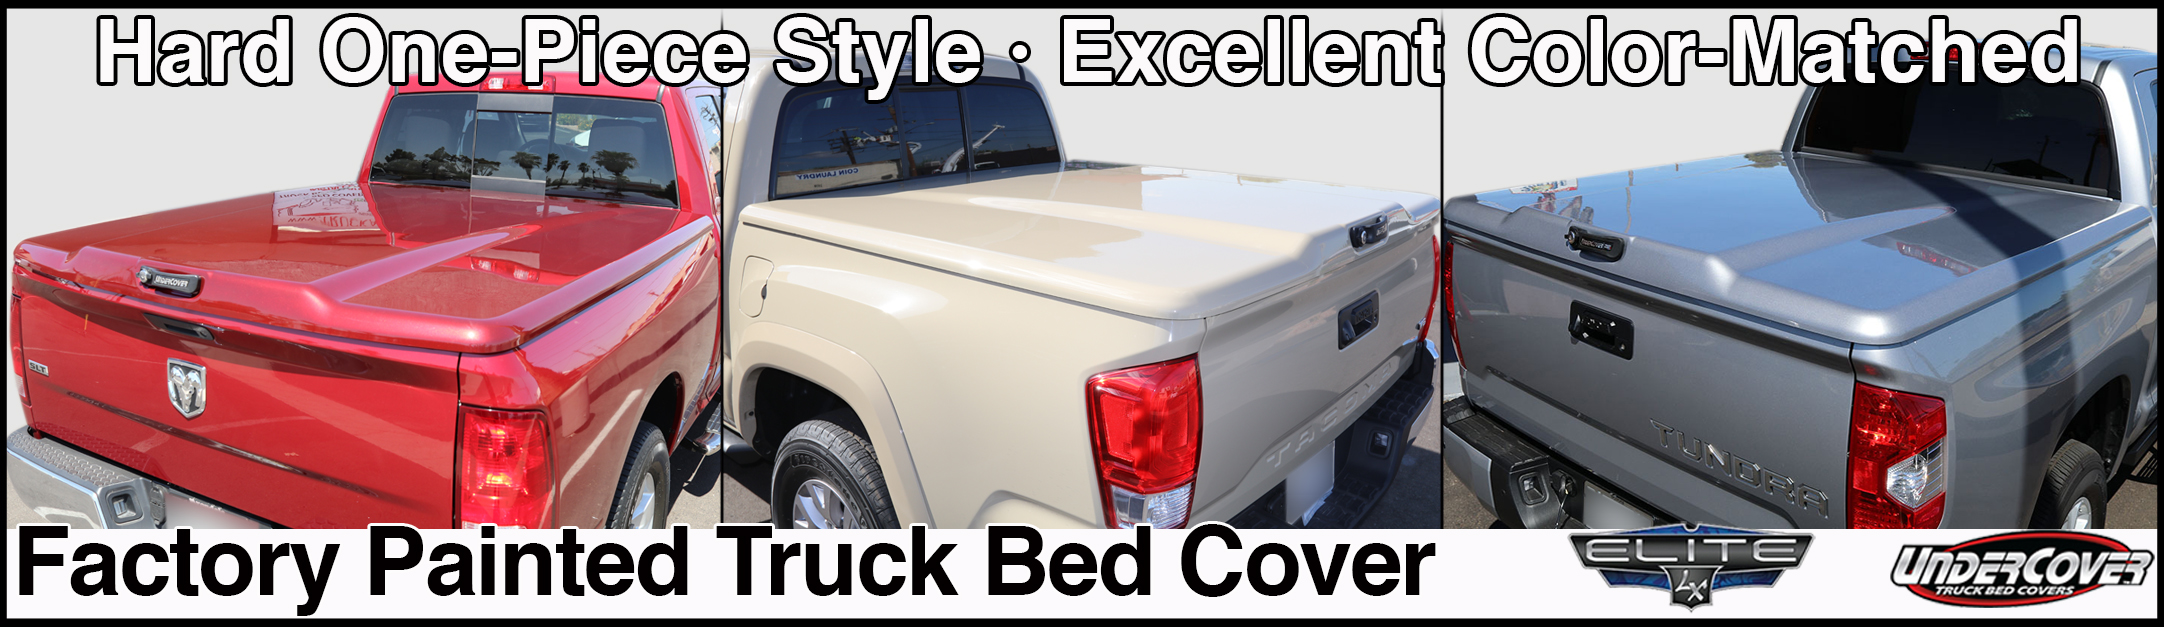 undercover elite lx painted truck bed covers